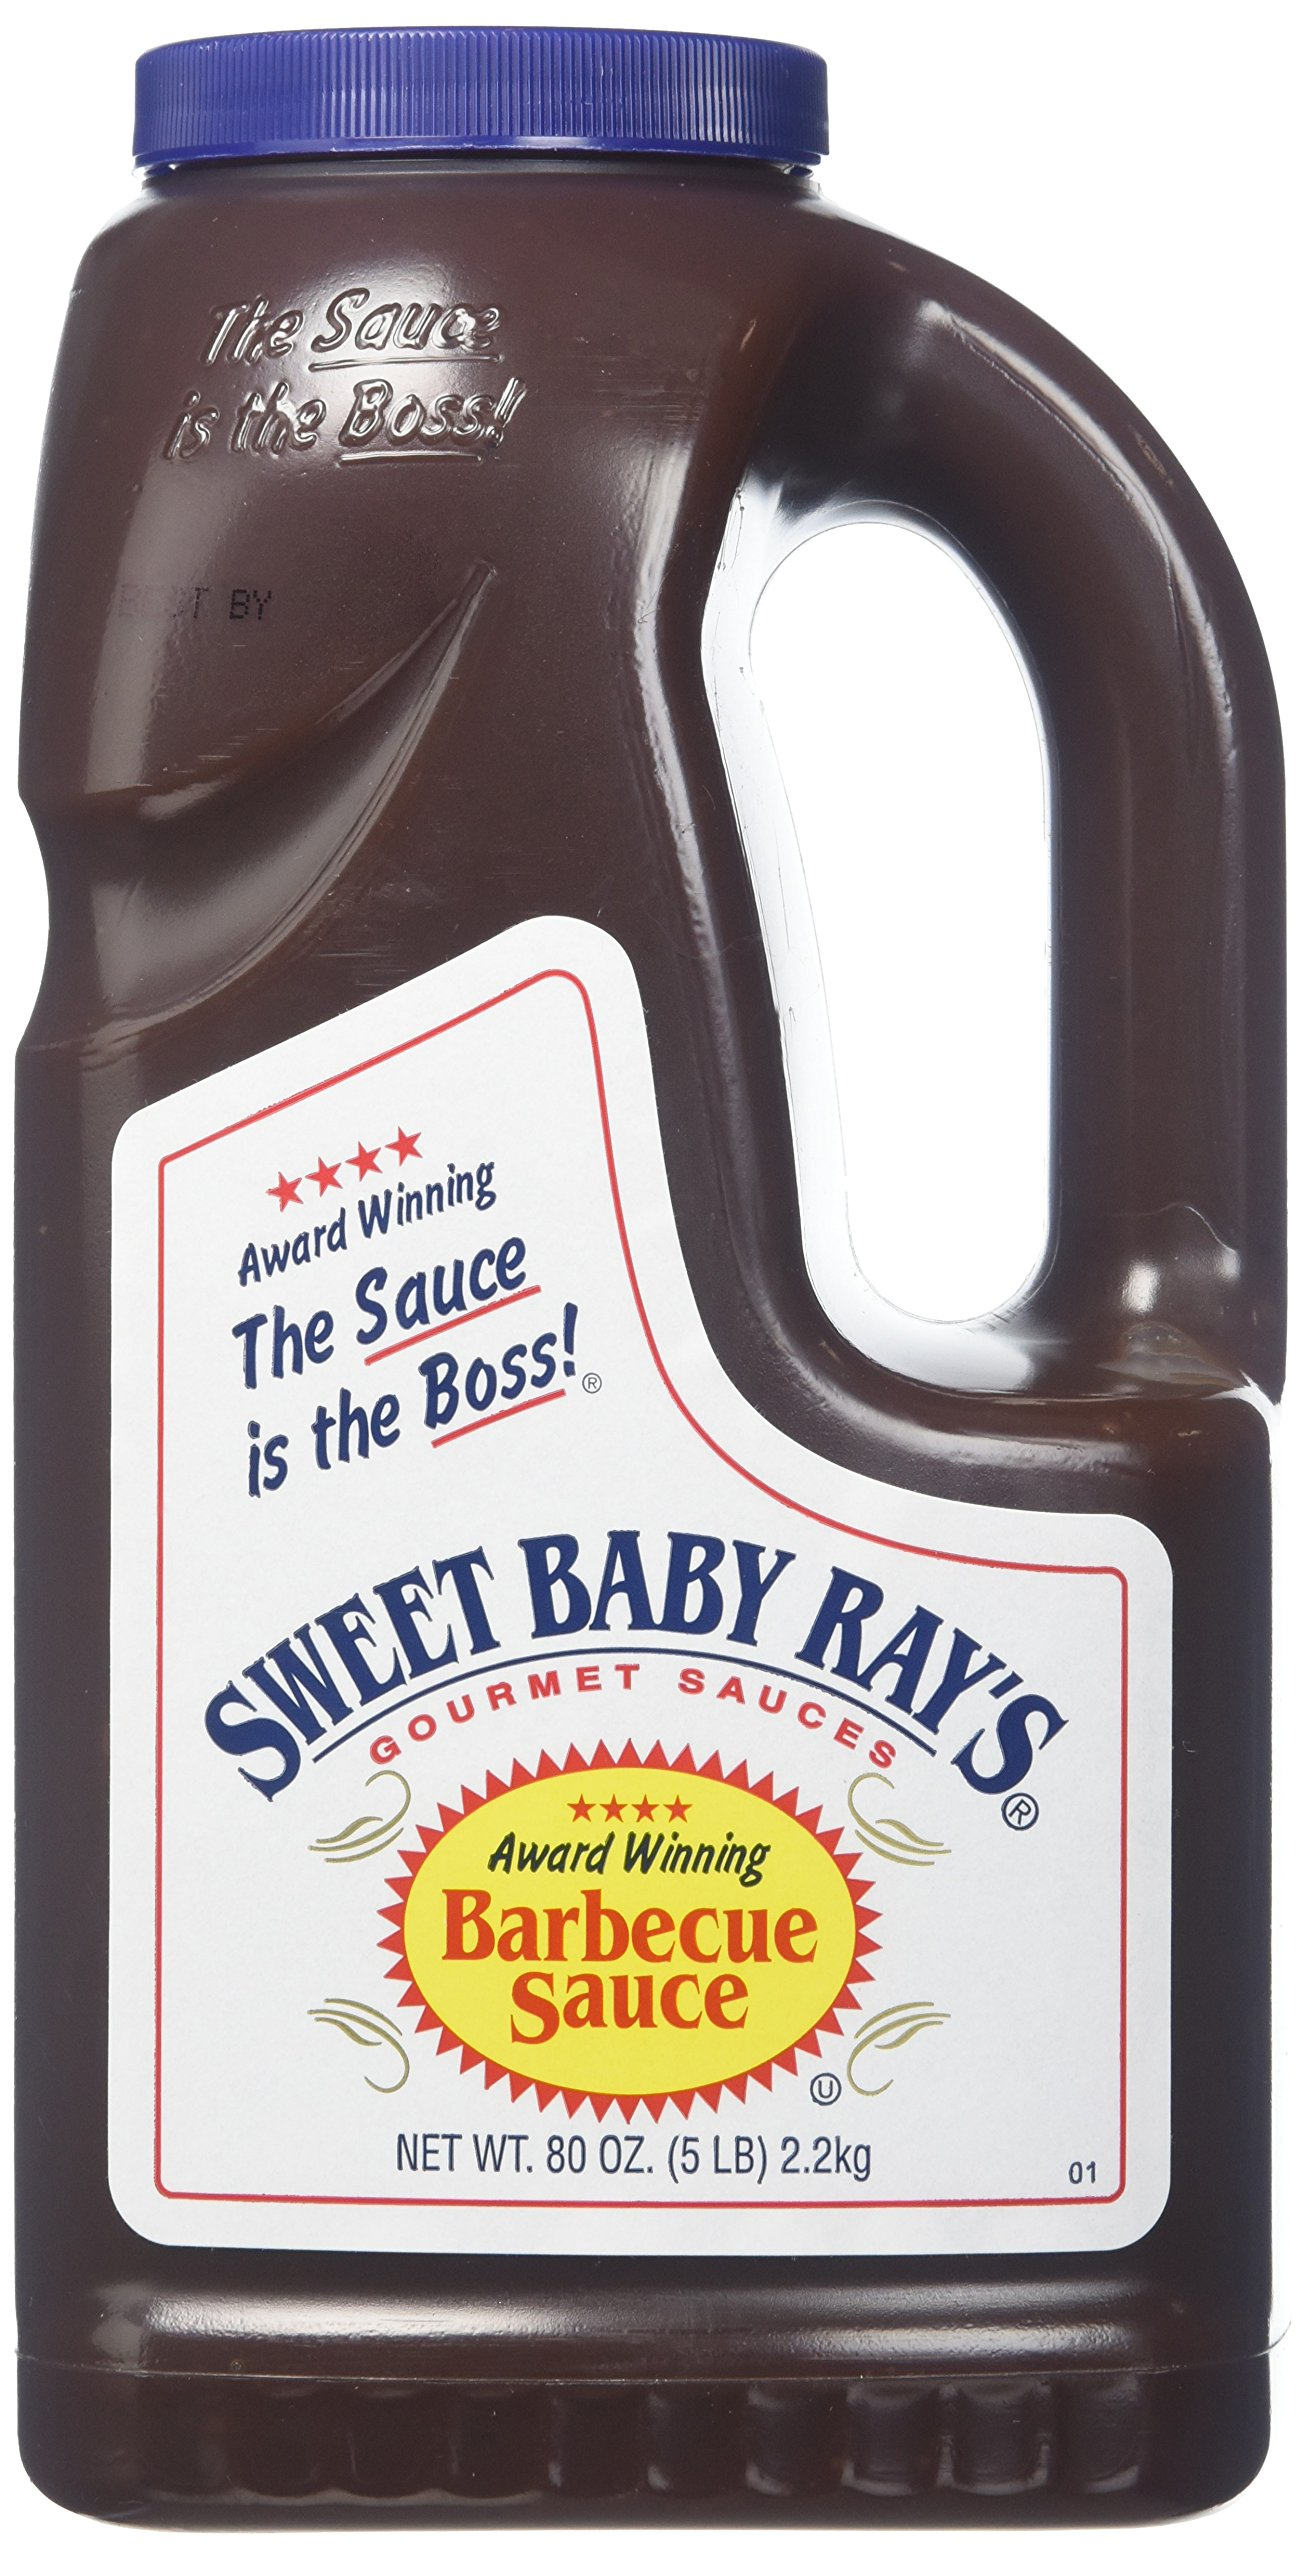 Sweet Baby Rays Barbecue Sauce, 80 oz.